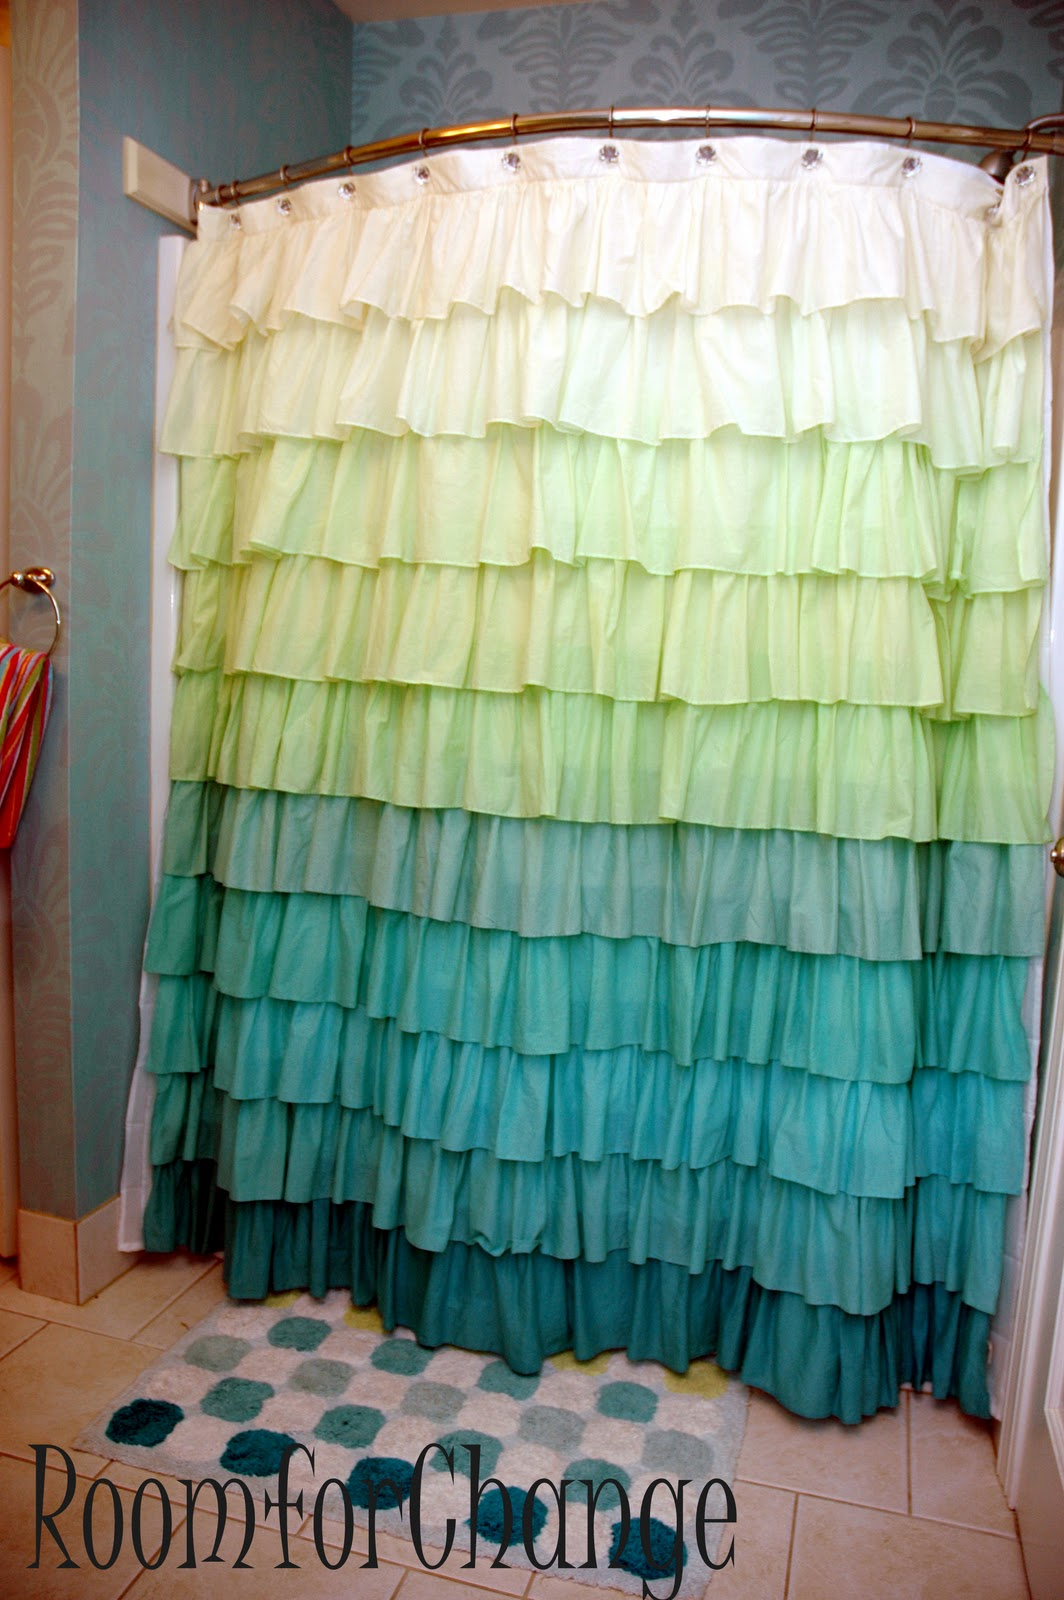 Blue ruffled shower curtains - Can You Believe This Adorable Ruffled Shower Curtain And Rug Came From